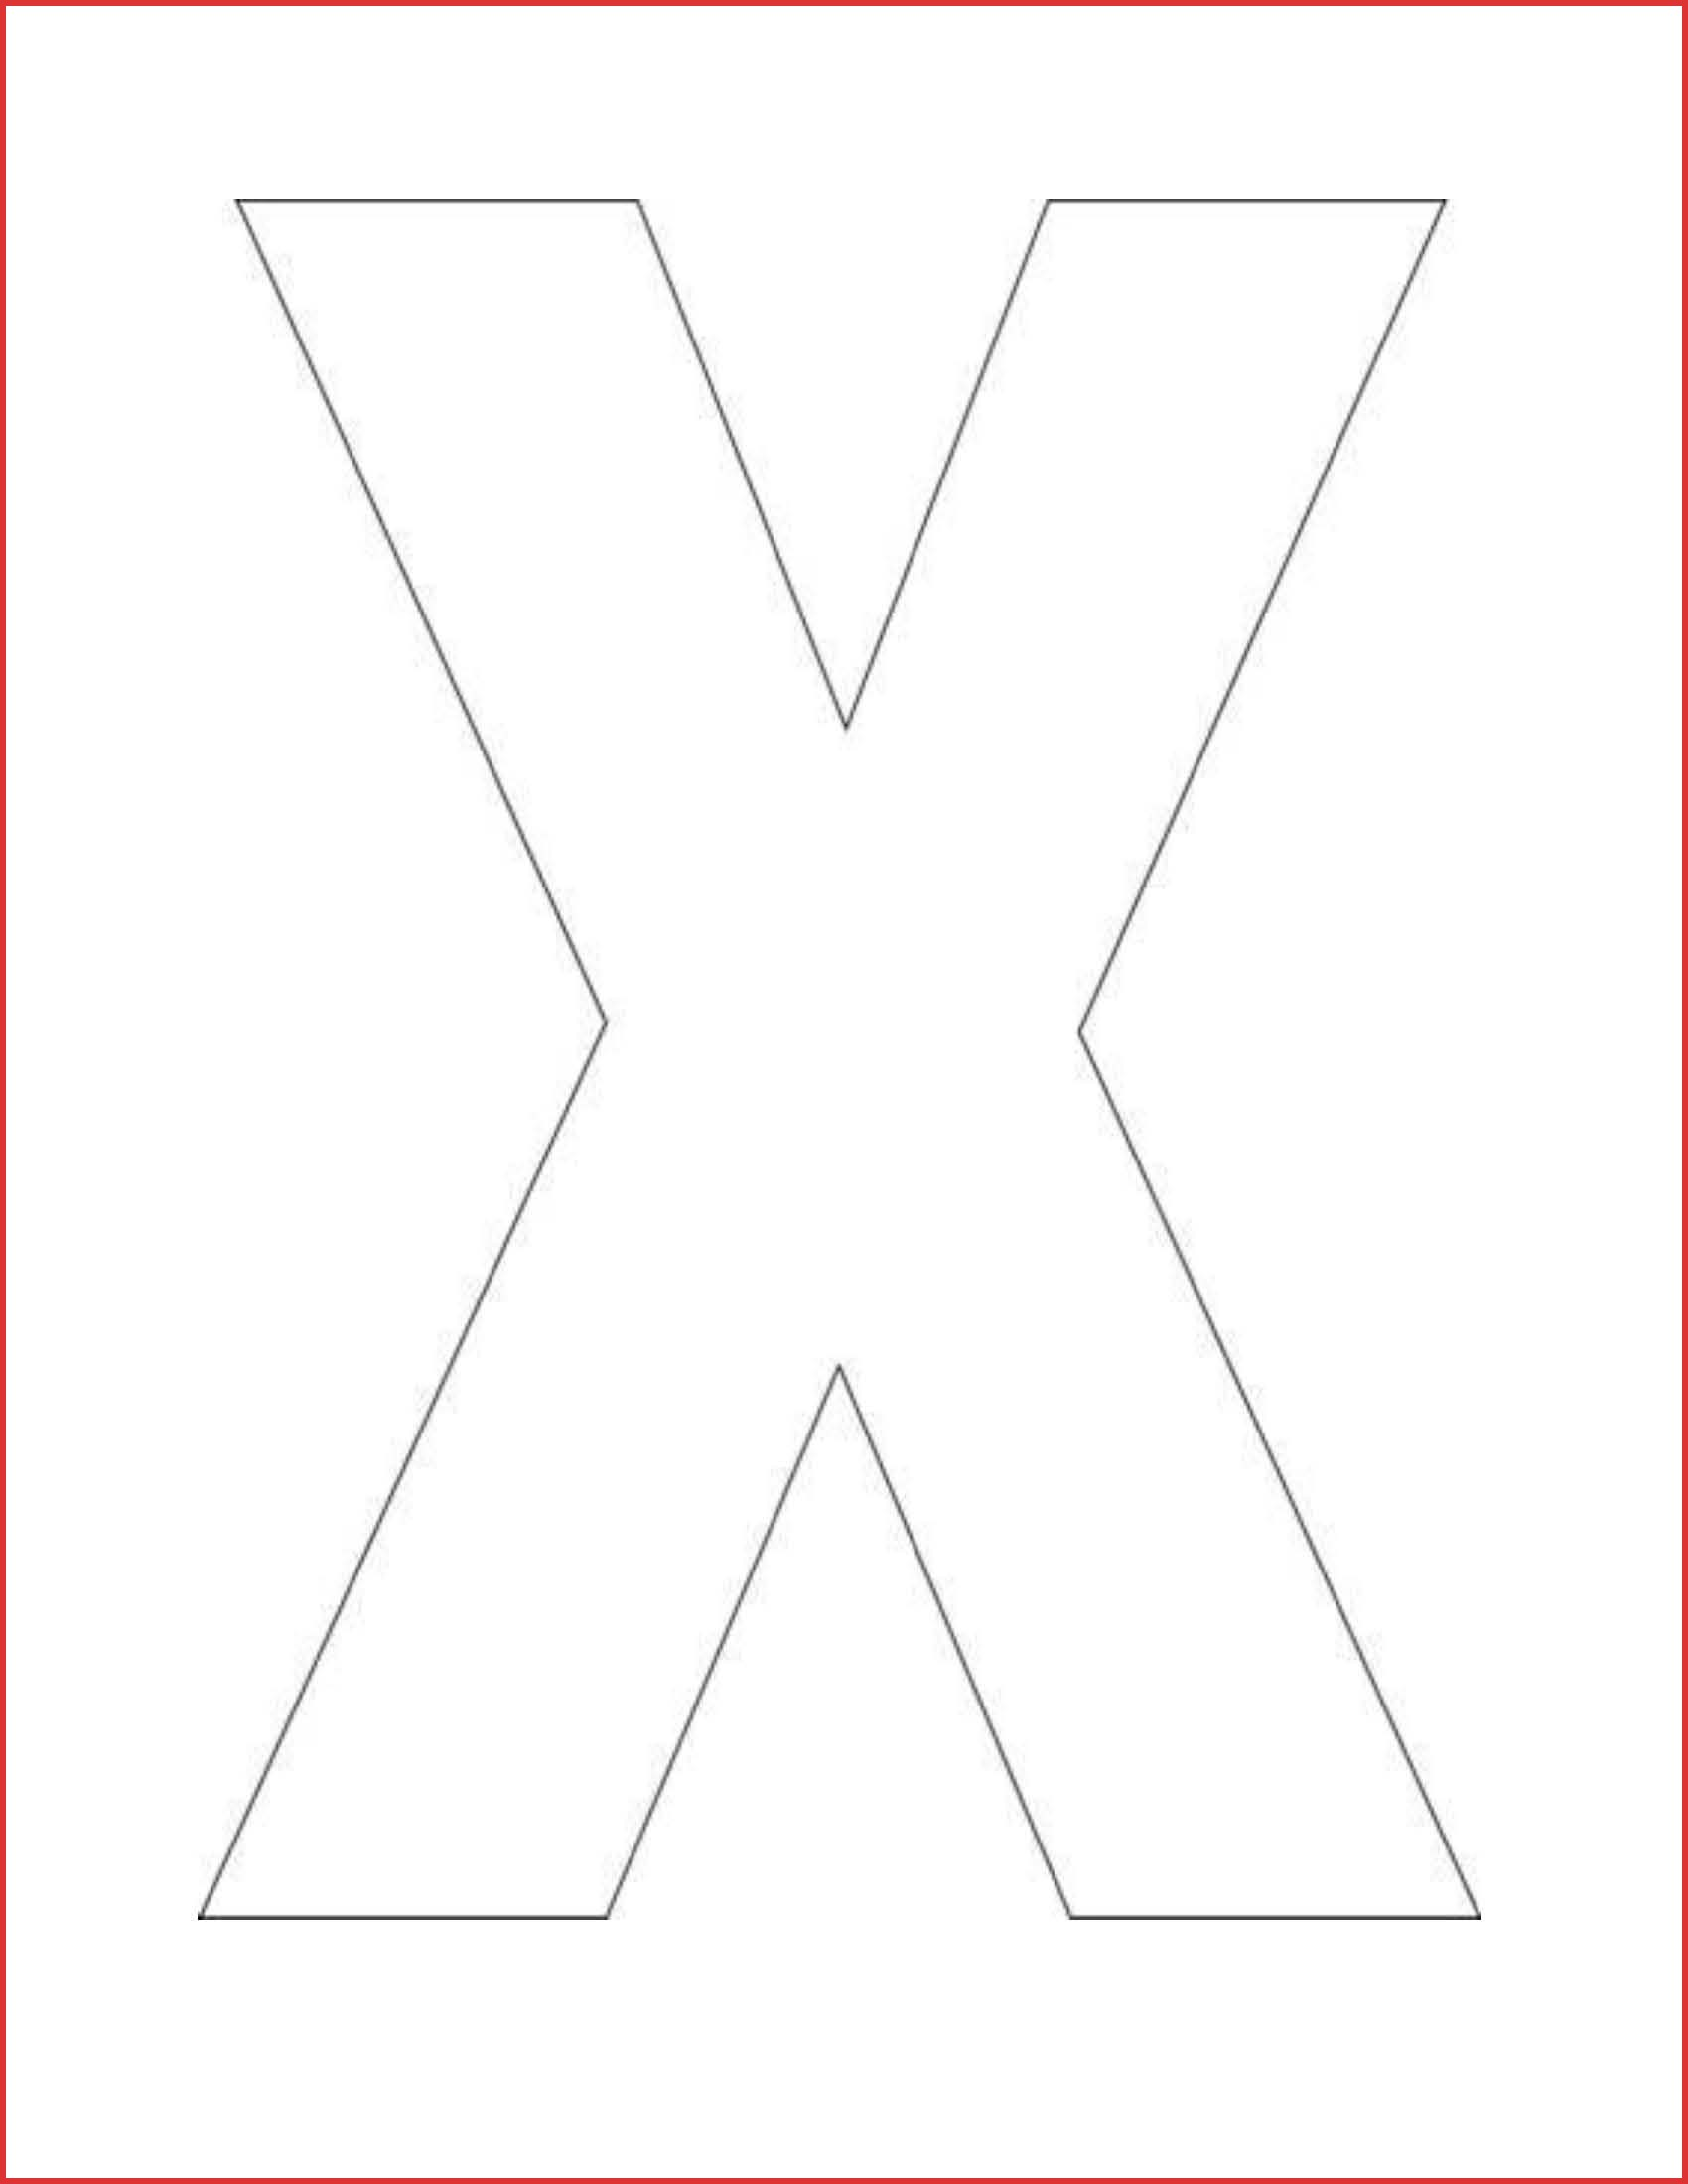 Preschool ideas for the letter x#663262 Myscres